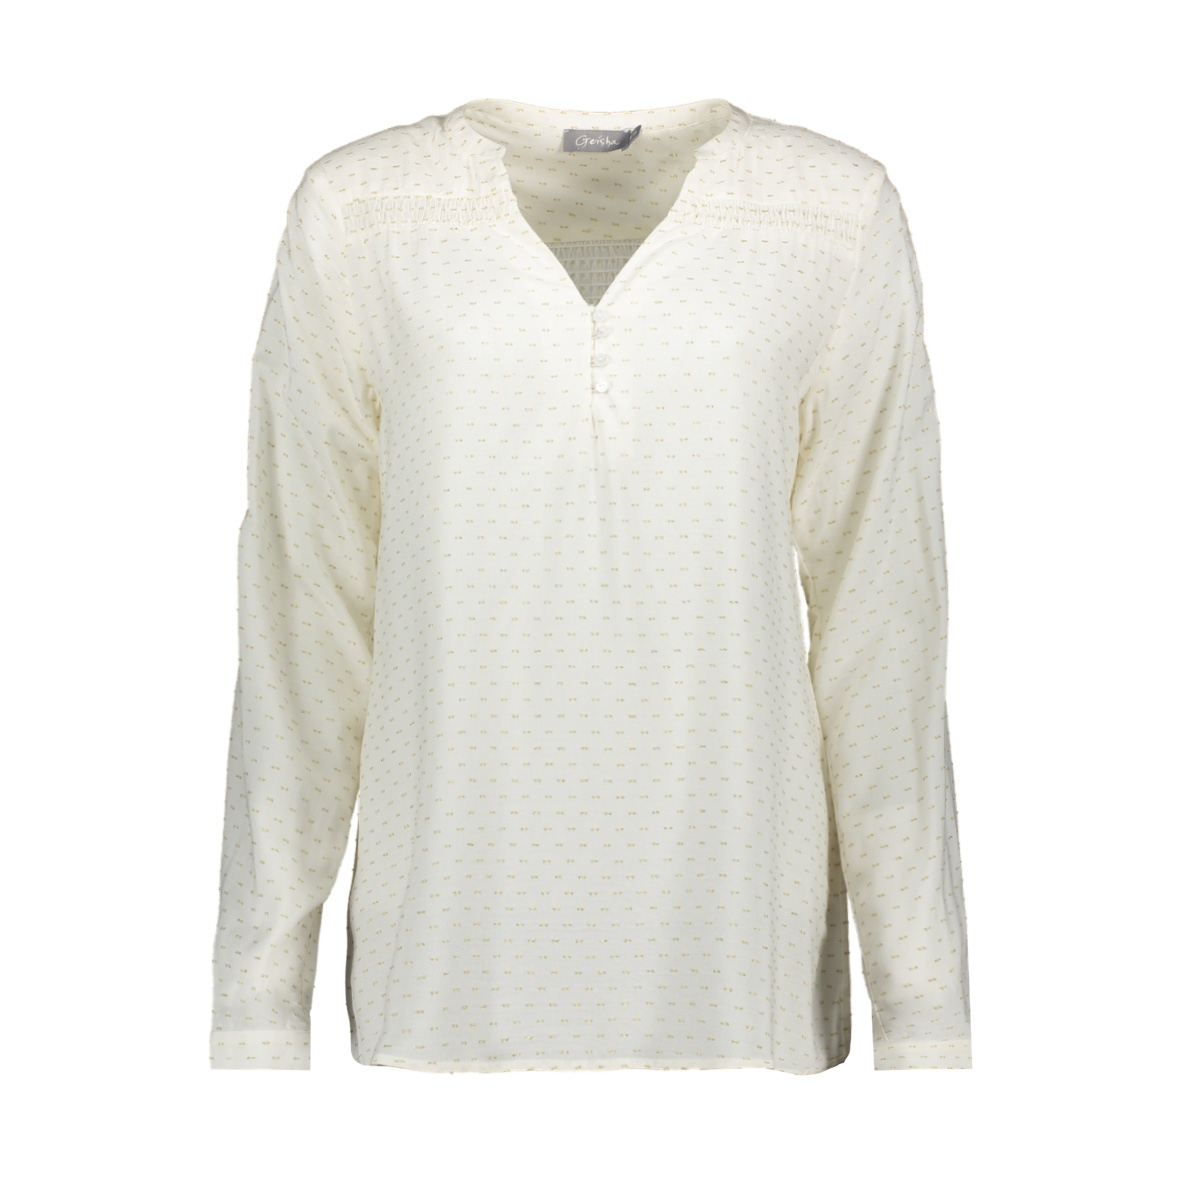 top smock and gold dots 03196 geisha blouse off-white/gold